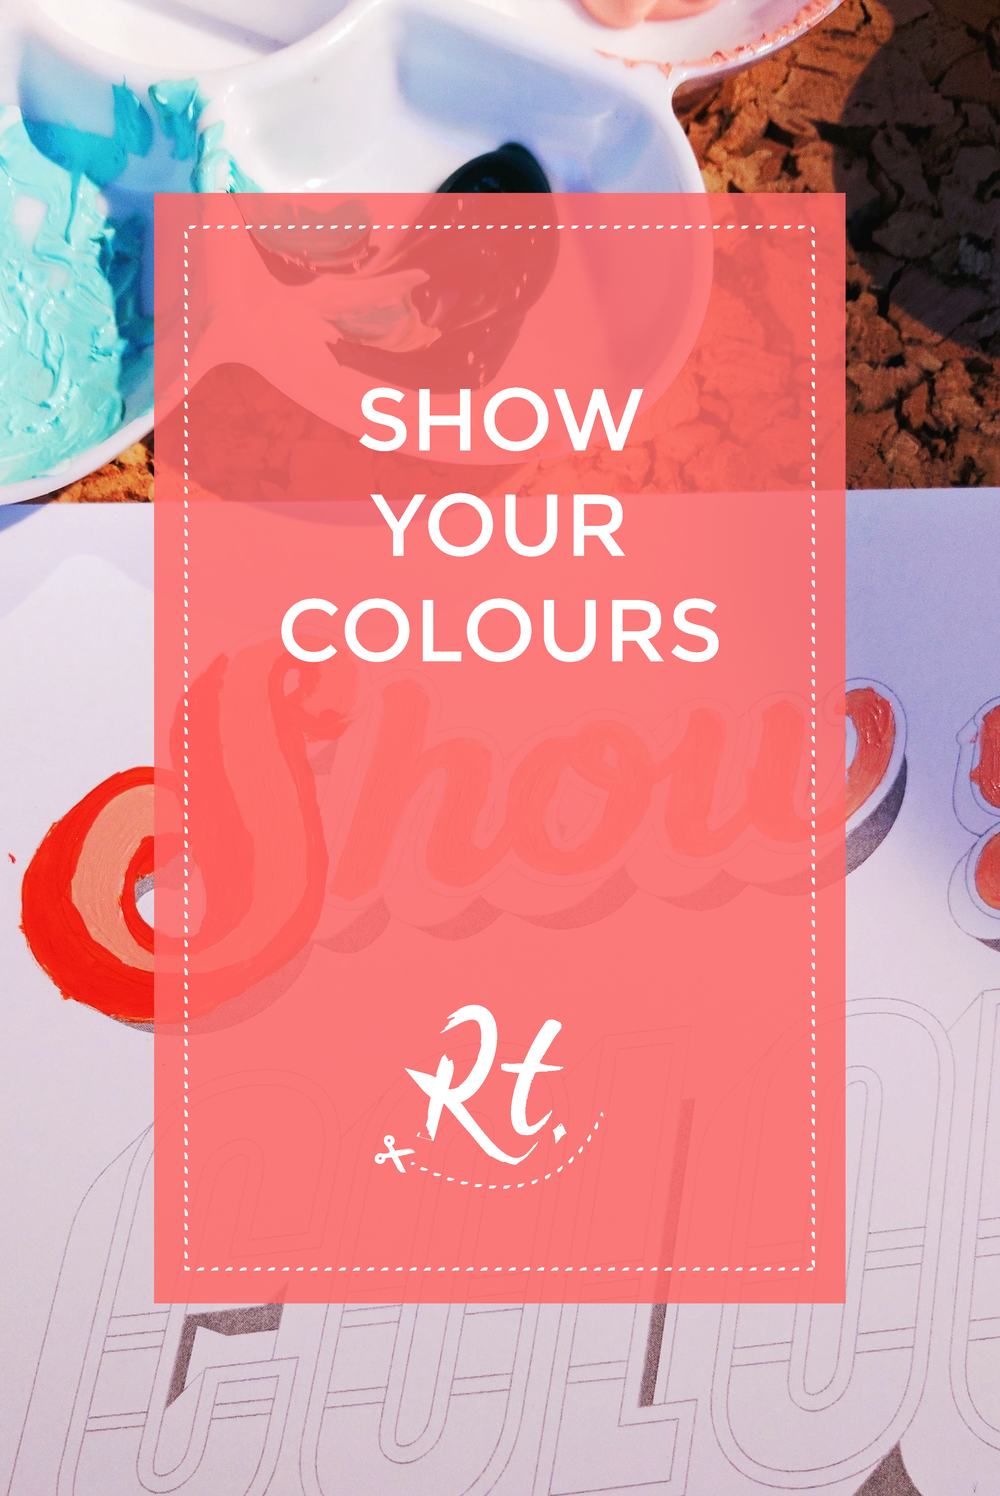 Show Your Colours by Rosh Thanki, lilly lou typography, painted using reeves acrylic paint